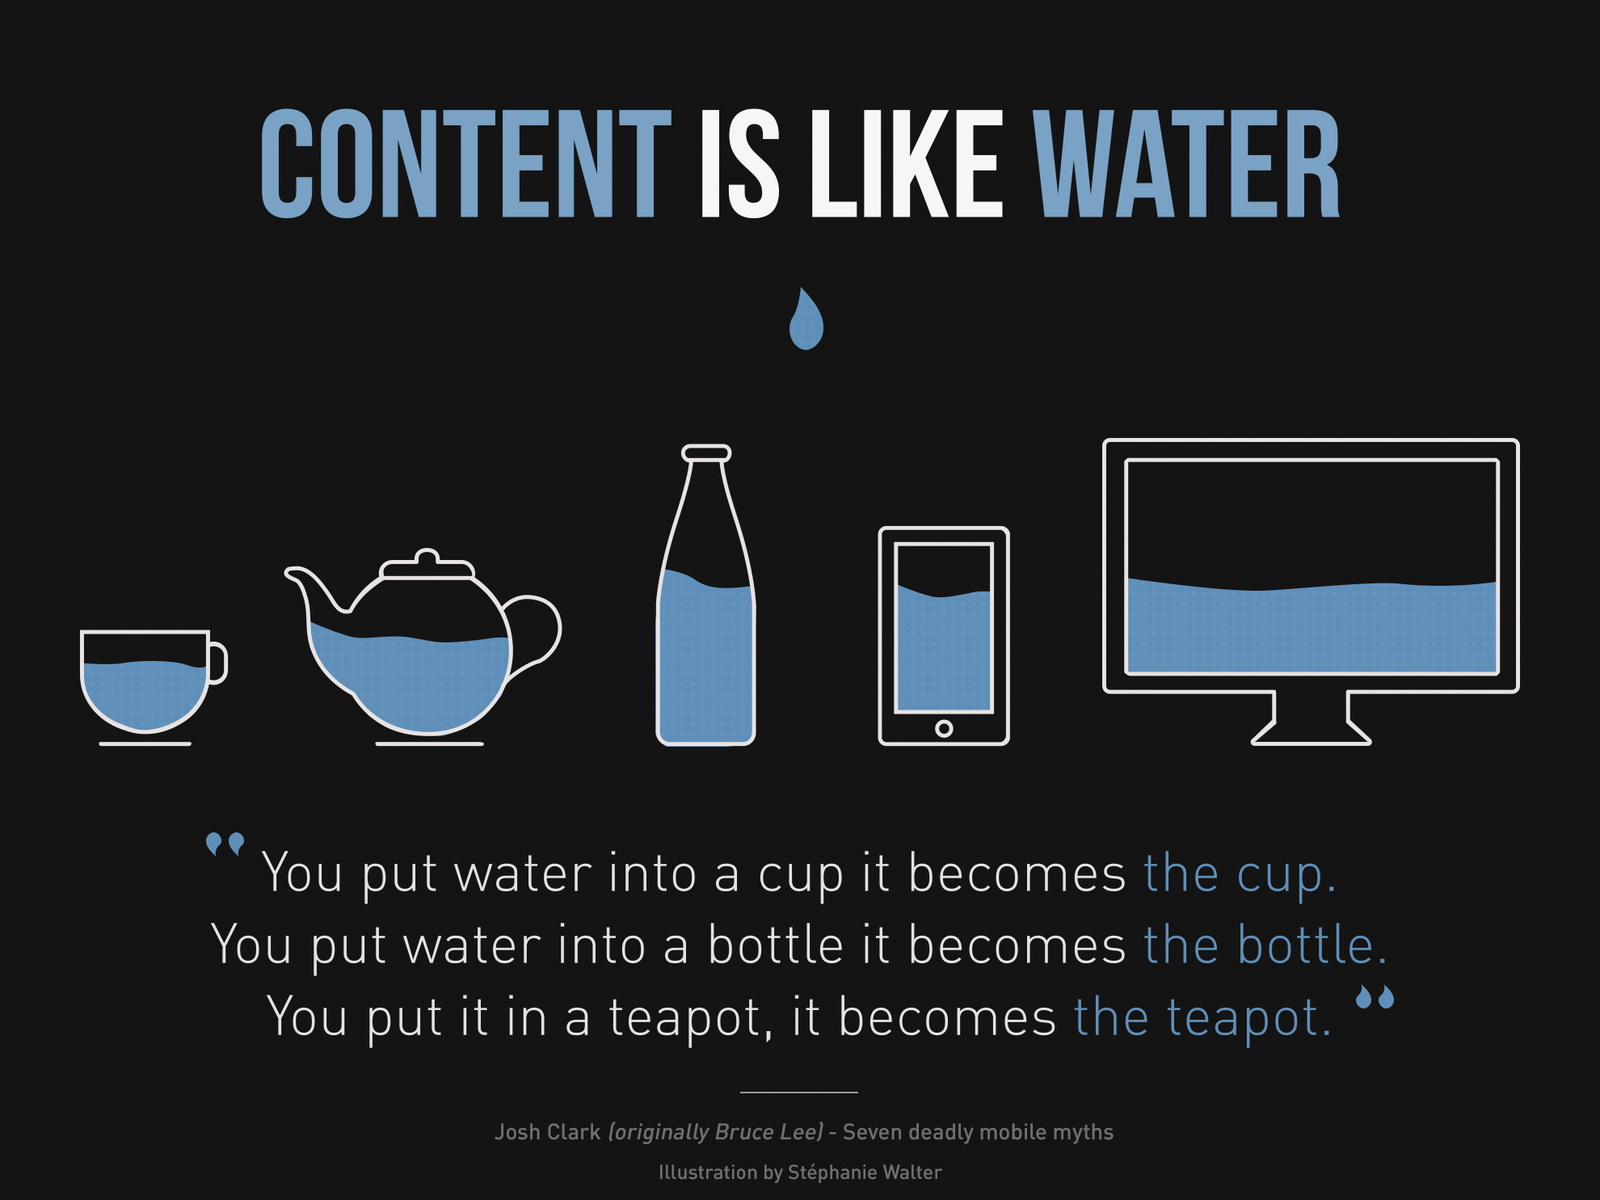 Difference Between Subject Matter and Content